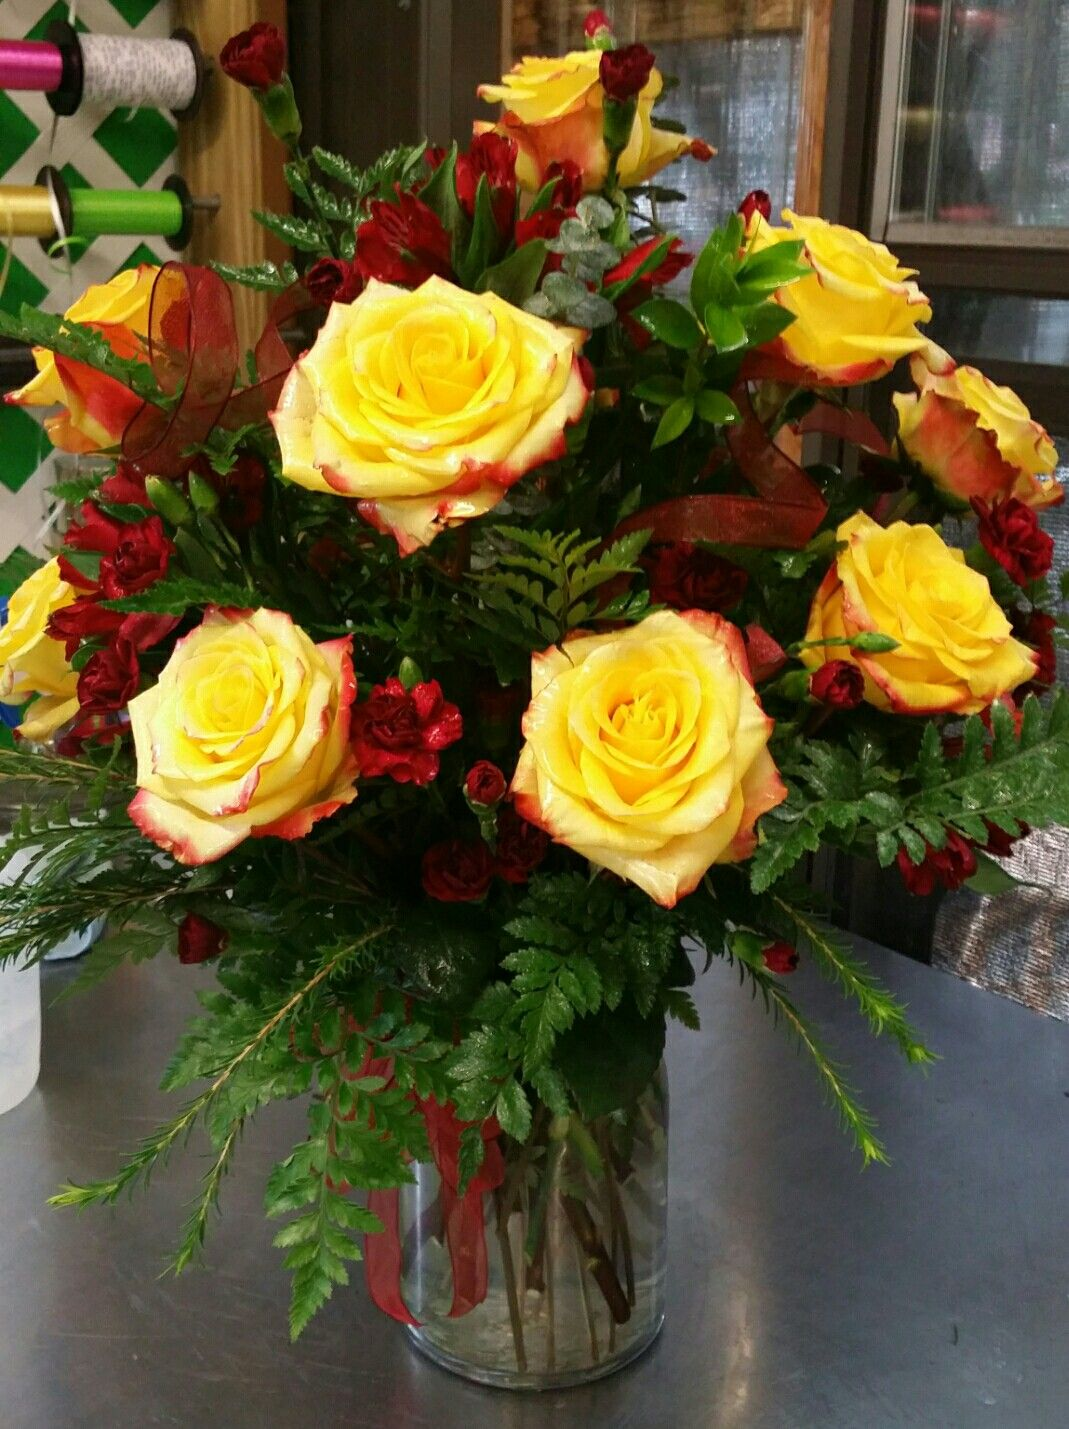 Hopes And Dreams Florist Rose Flower Arrangements Flower Arrangements Flower Vase Arrangements